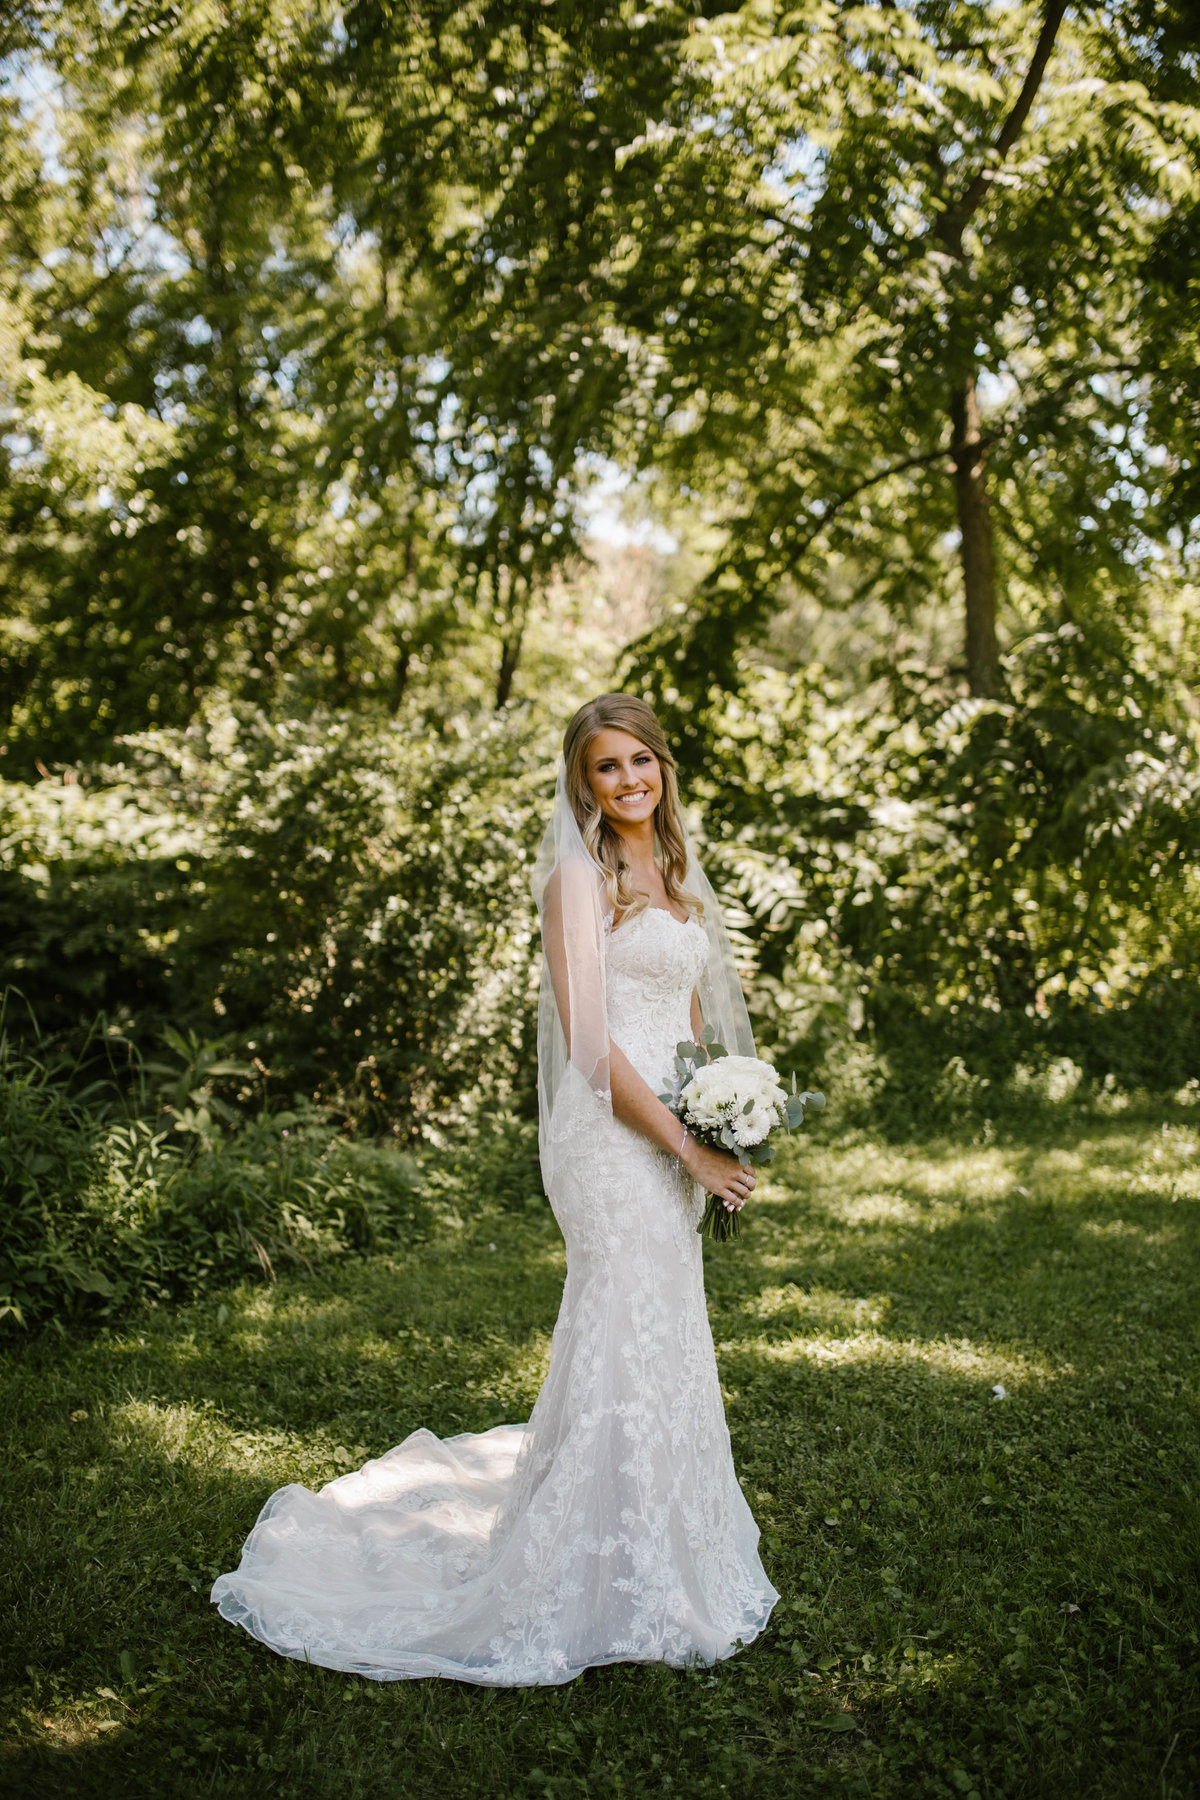 Unique pgh wedding photography63